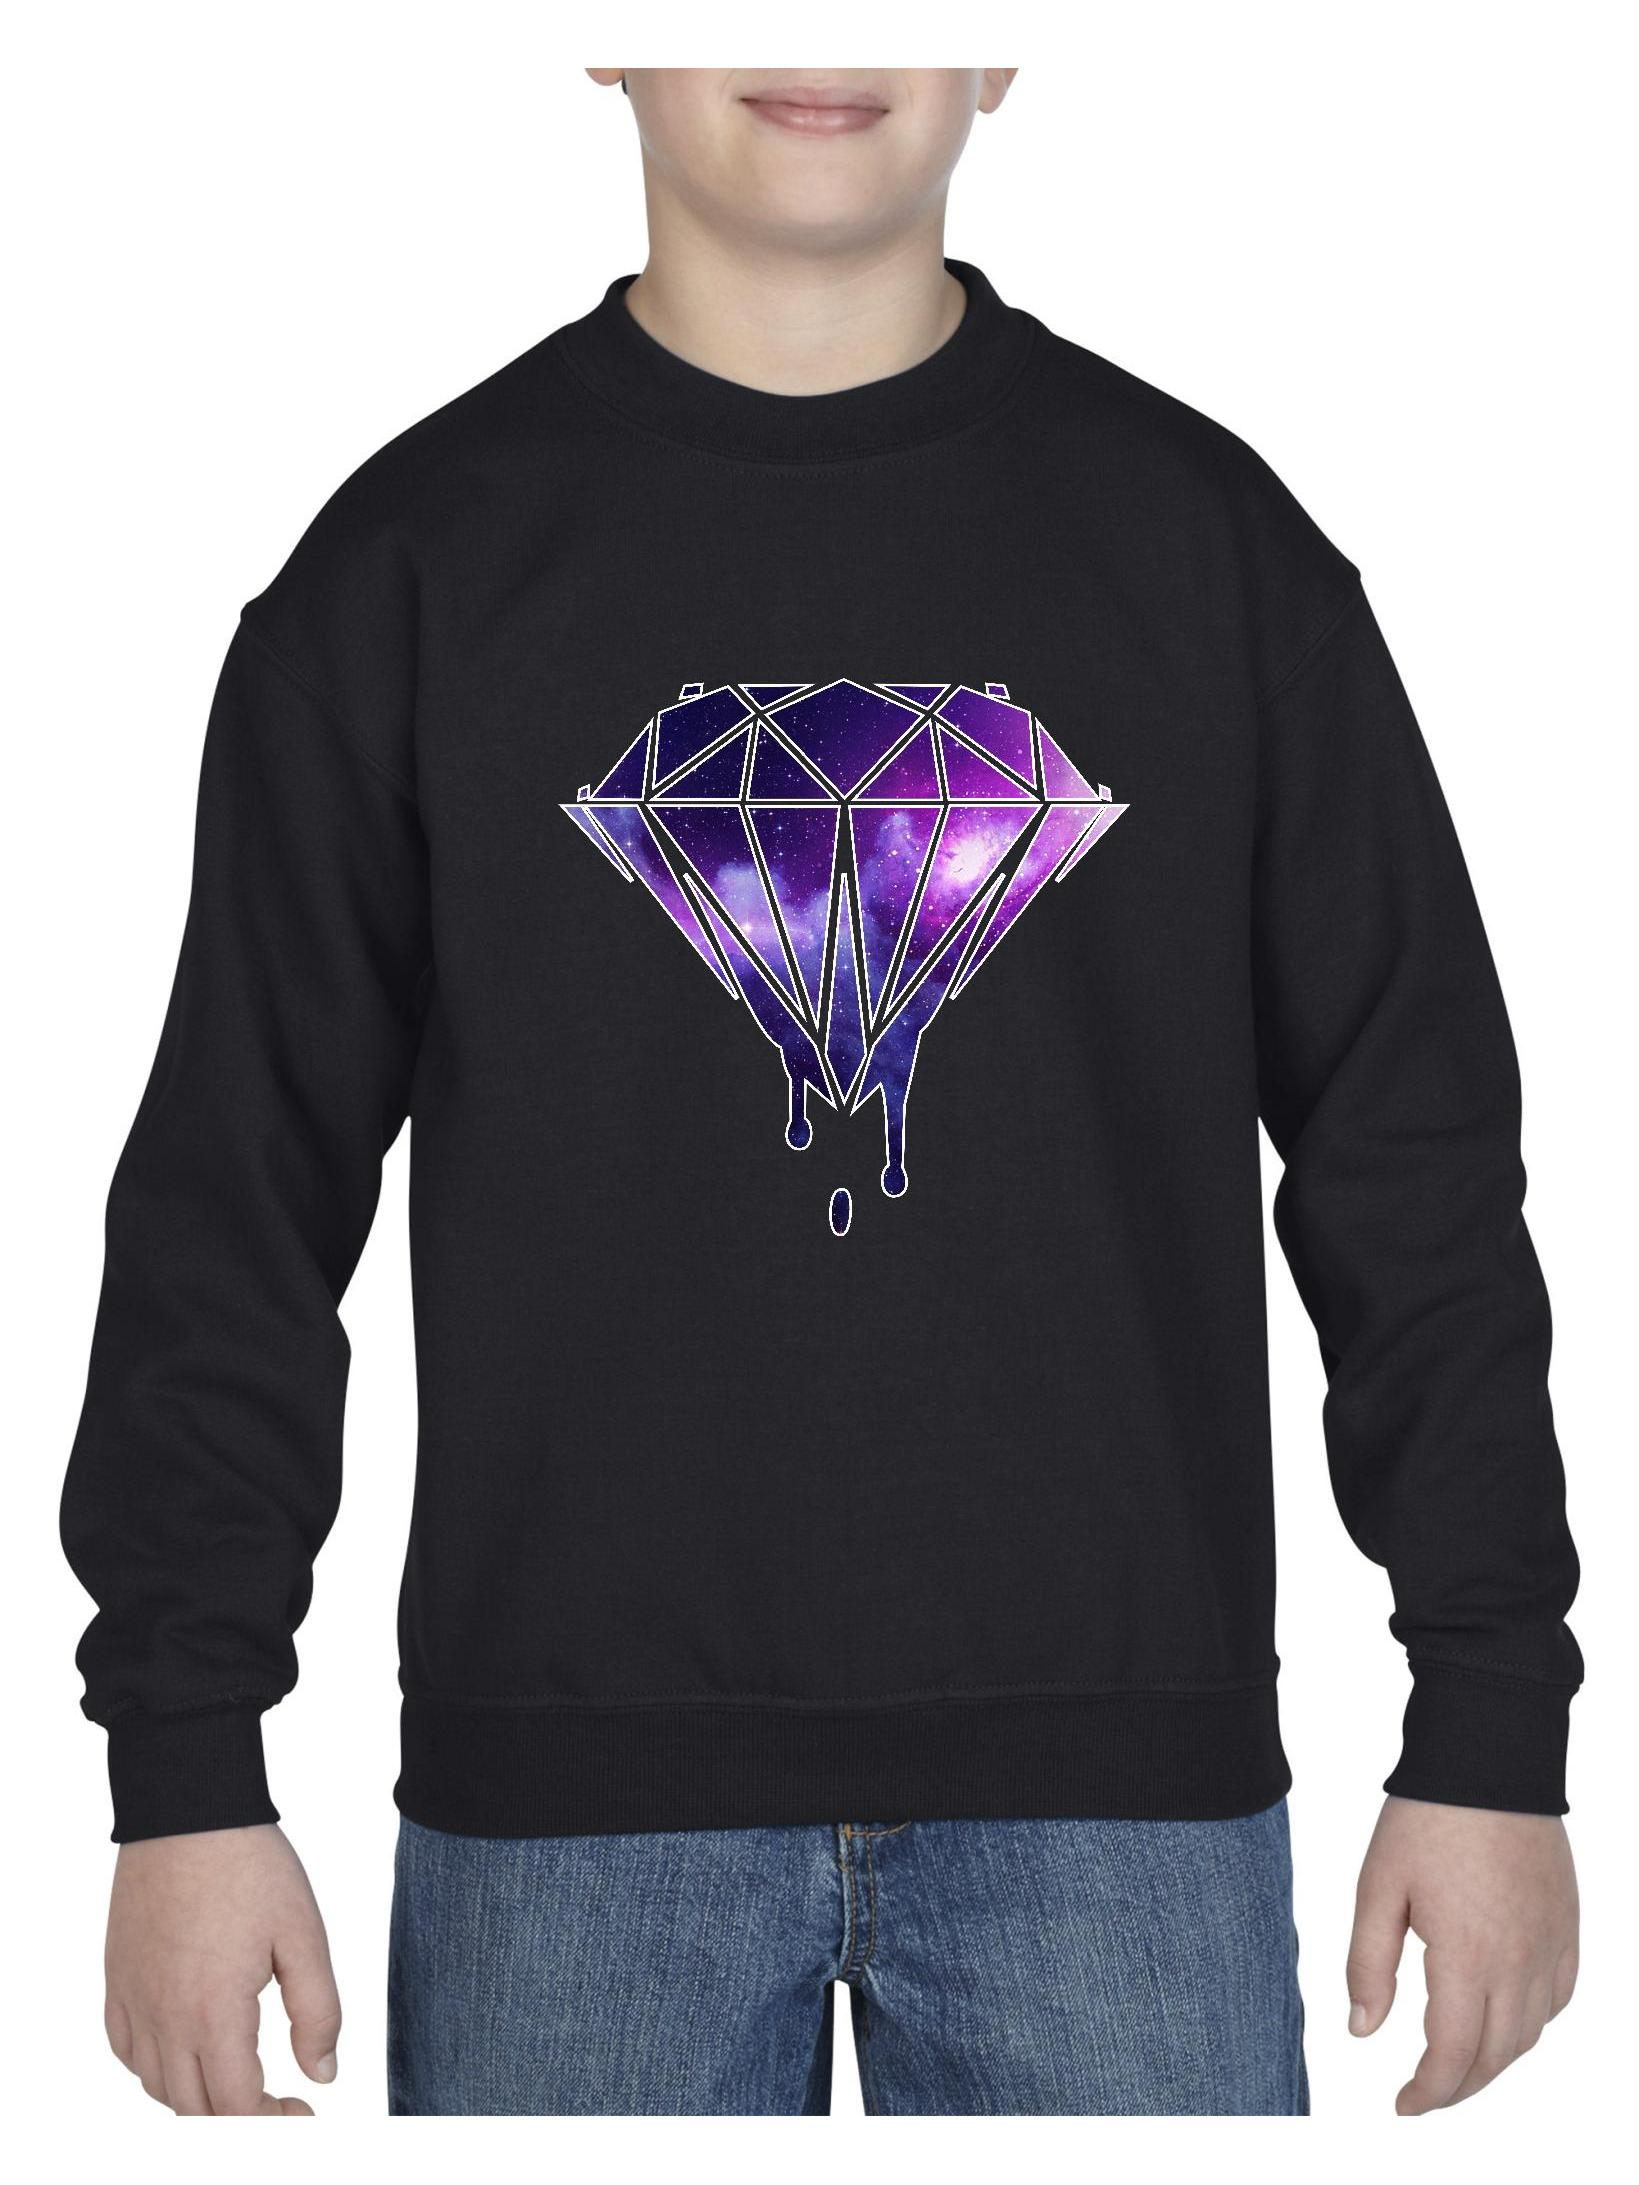 Diamond Galaxy Melting Bleeding Dripping Unisex Youth Crewneck Sweatshirt